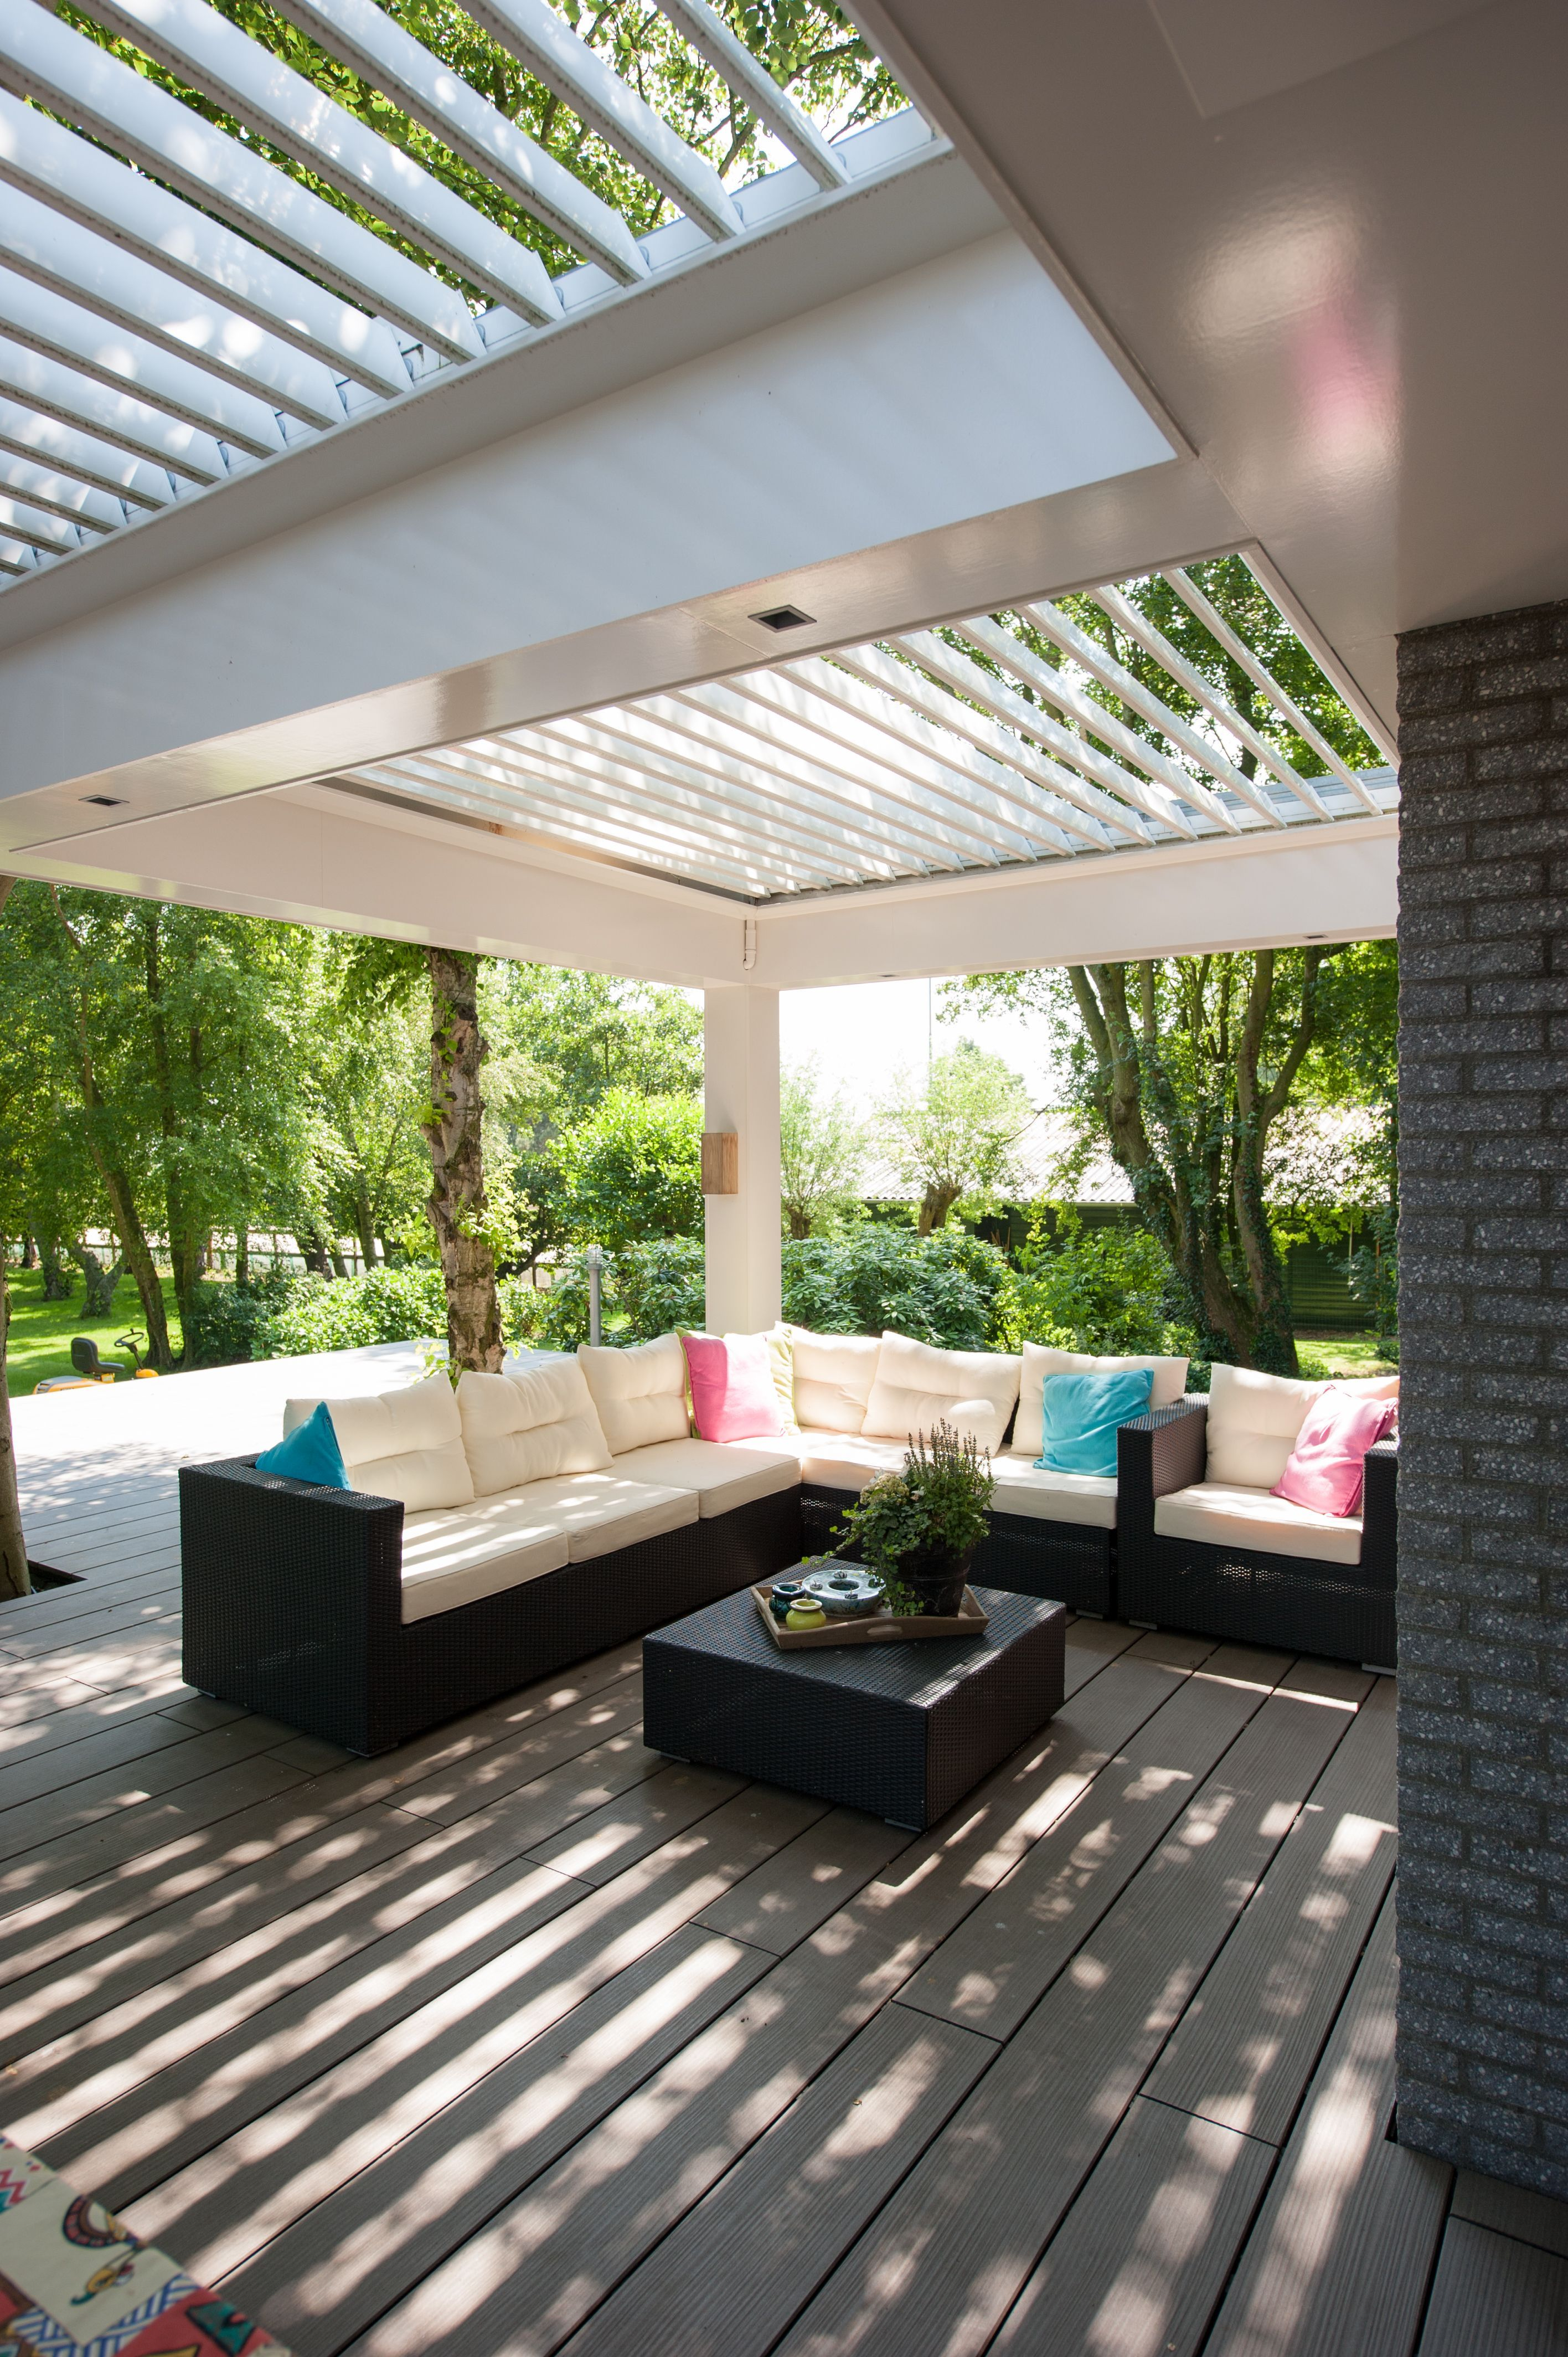 Outdoor Room Featuring Opening Louvre Roofs Outdoor Rooms Backyard Patio Patio Design